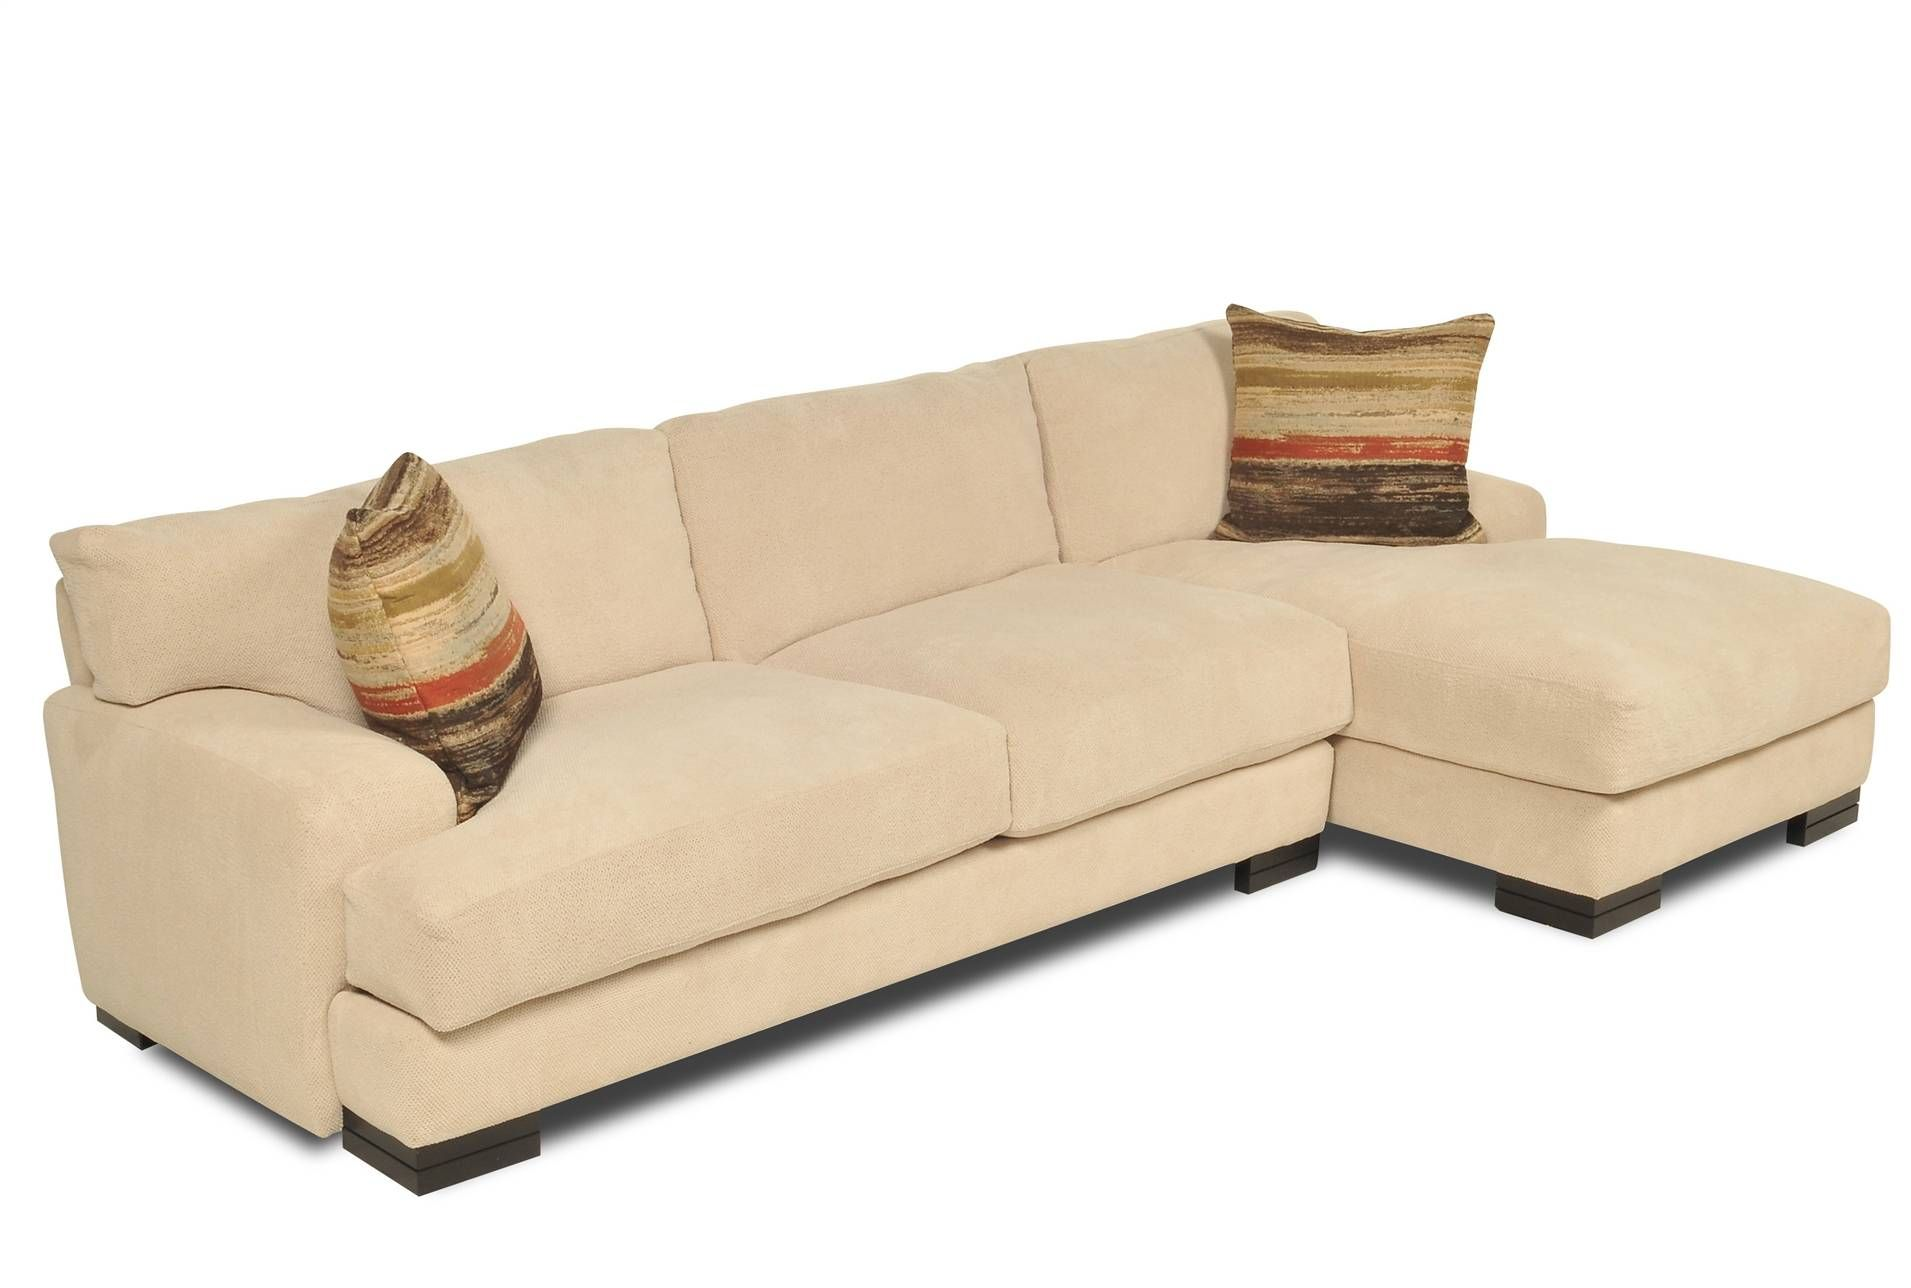 Living Spaces Rauley 2 Piece Sectional $1395 but in Minx not